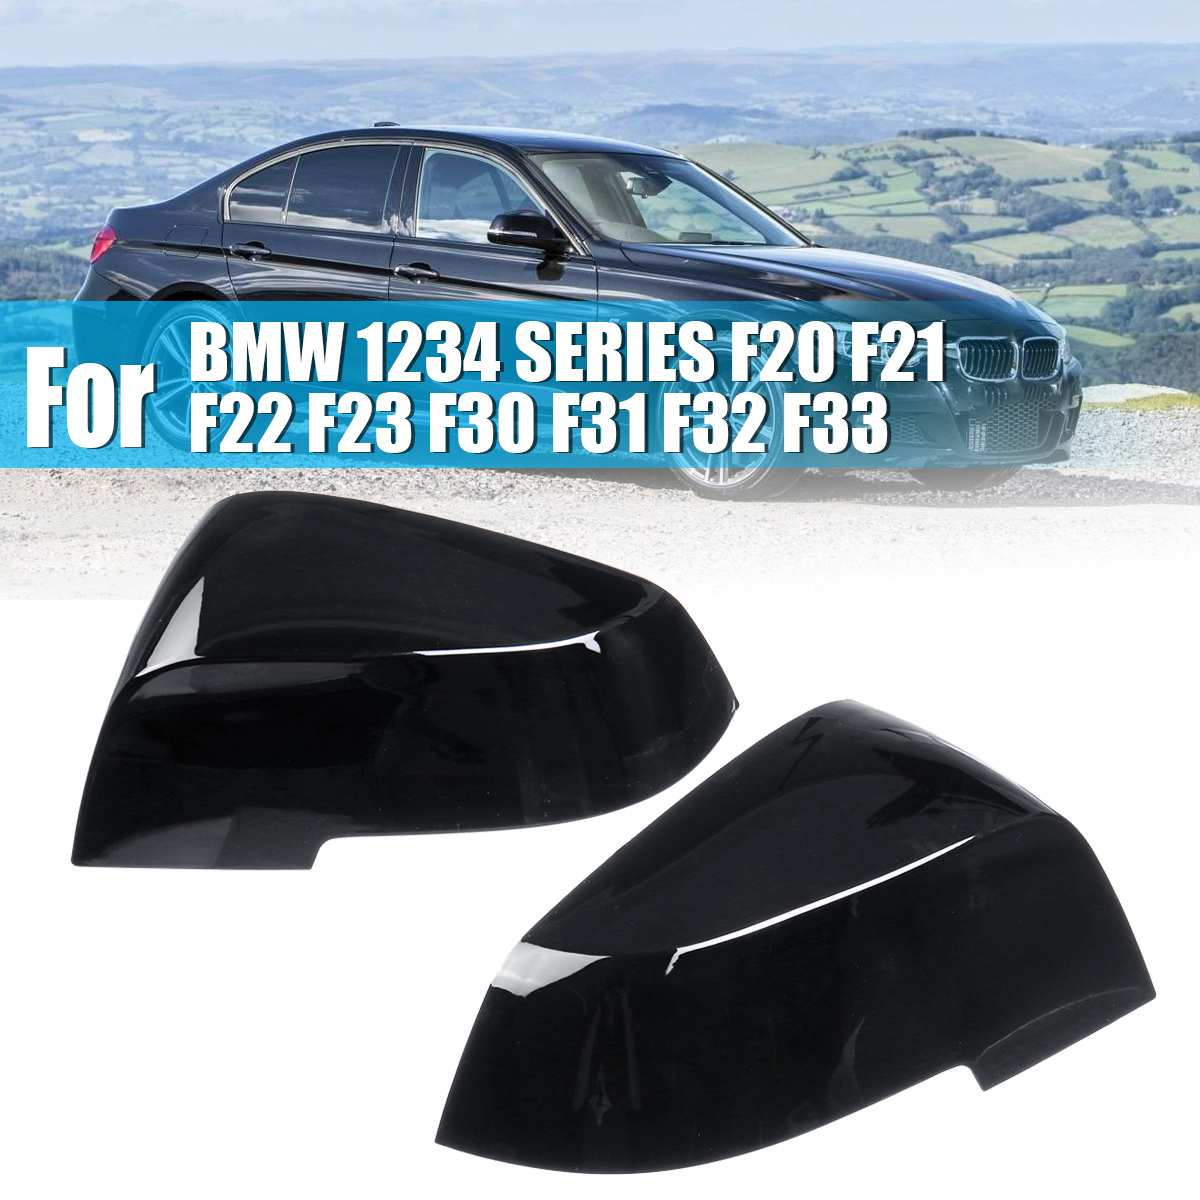 1Pair Gloss Black Door Wing Mirror Covers For BMW 1234 SERIES F20 F21 F22 F23 F30 <font><b>F31</b></font> F32 F33 image